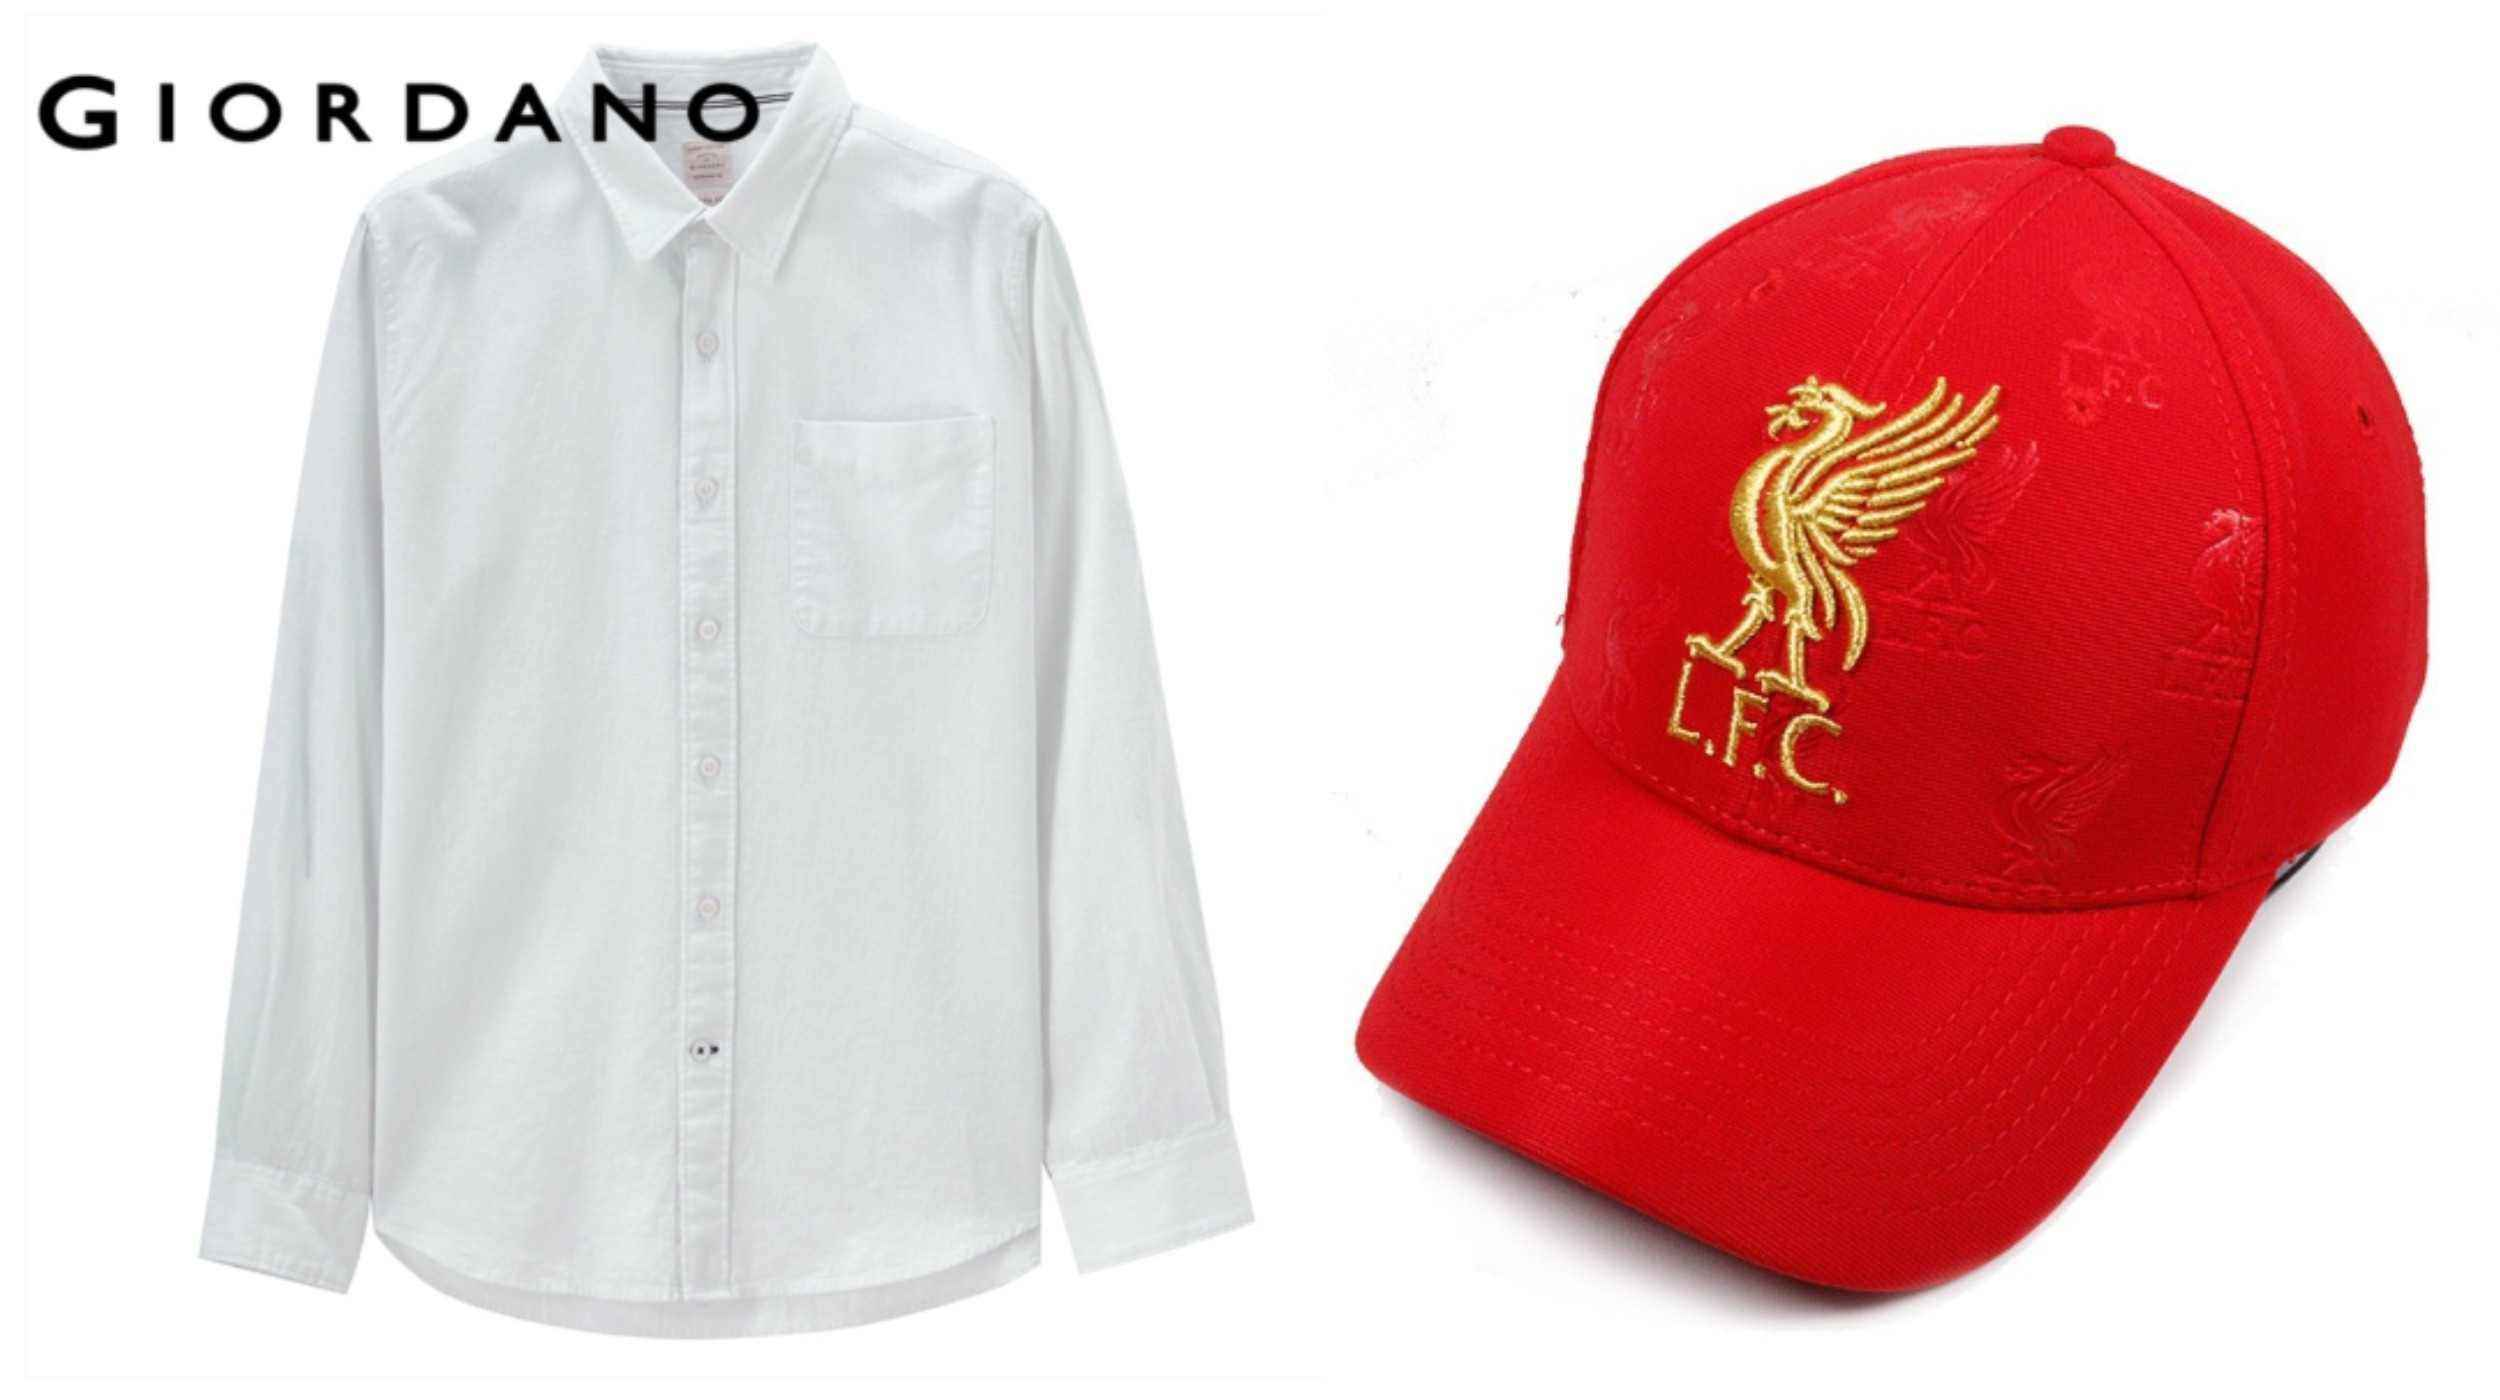 white giordano button down shirt red liverpool baseball hat singapore national day outfit